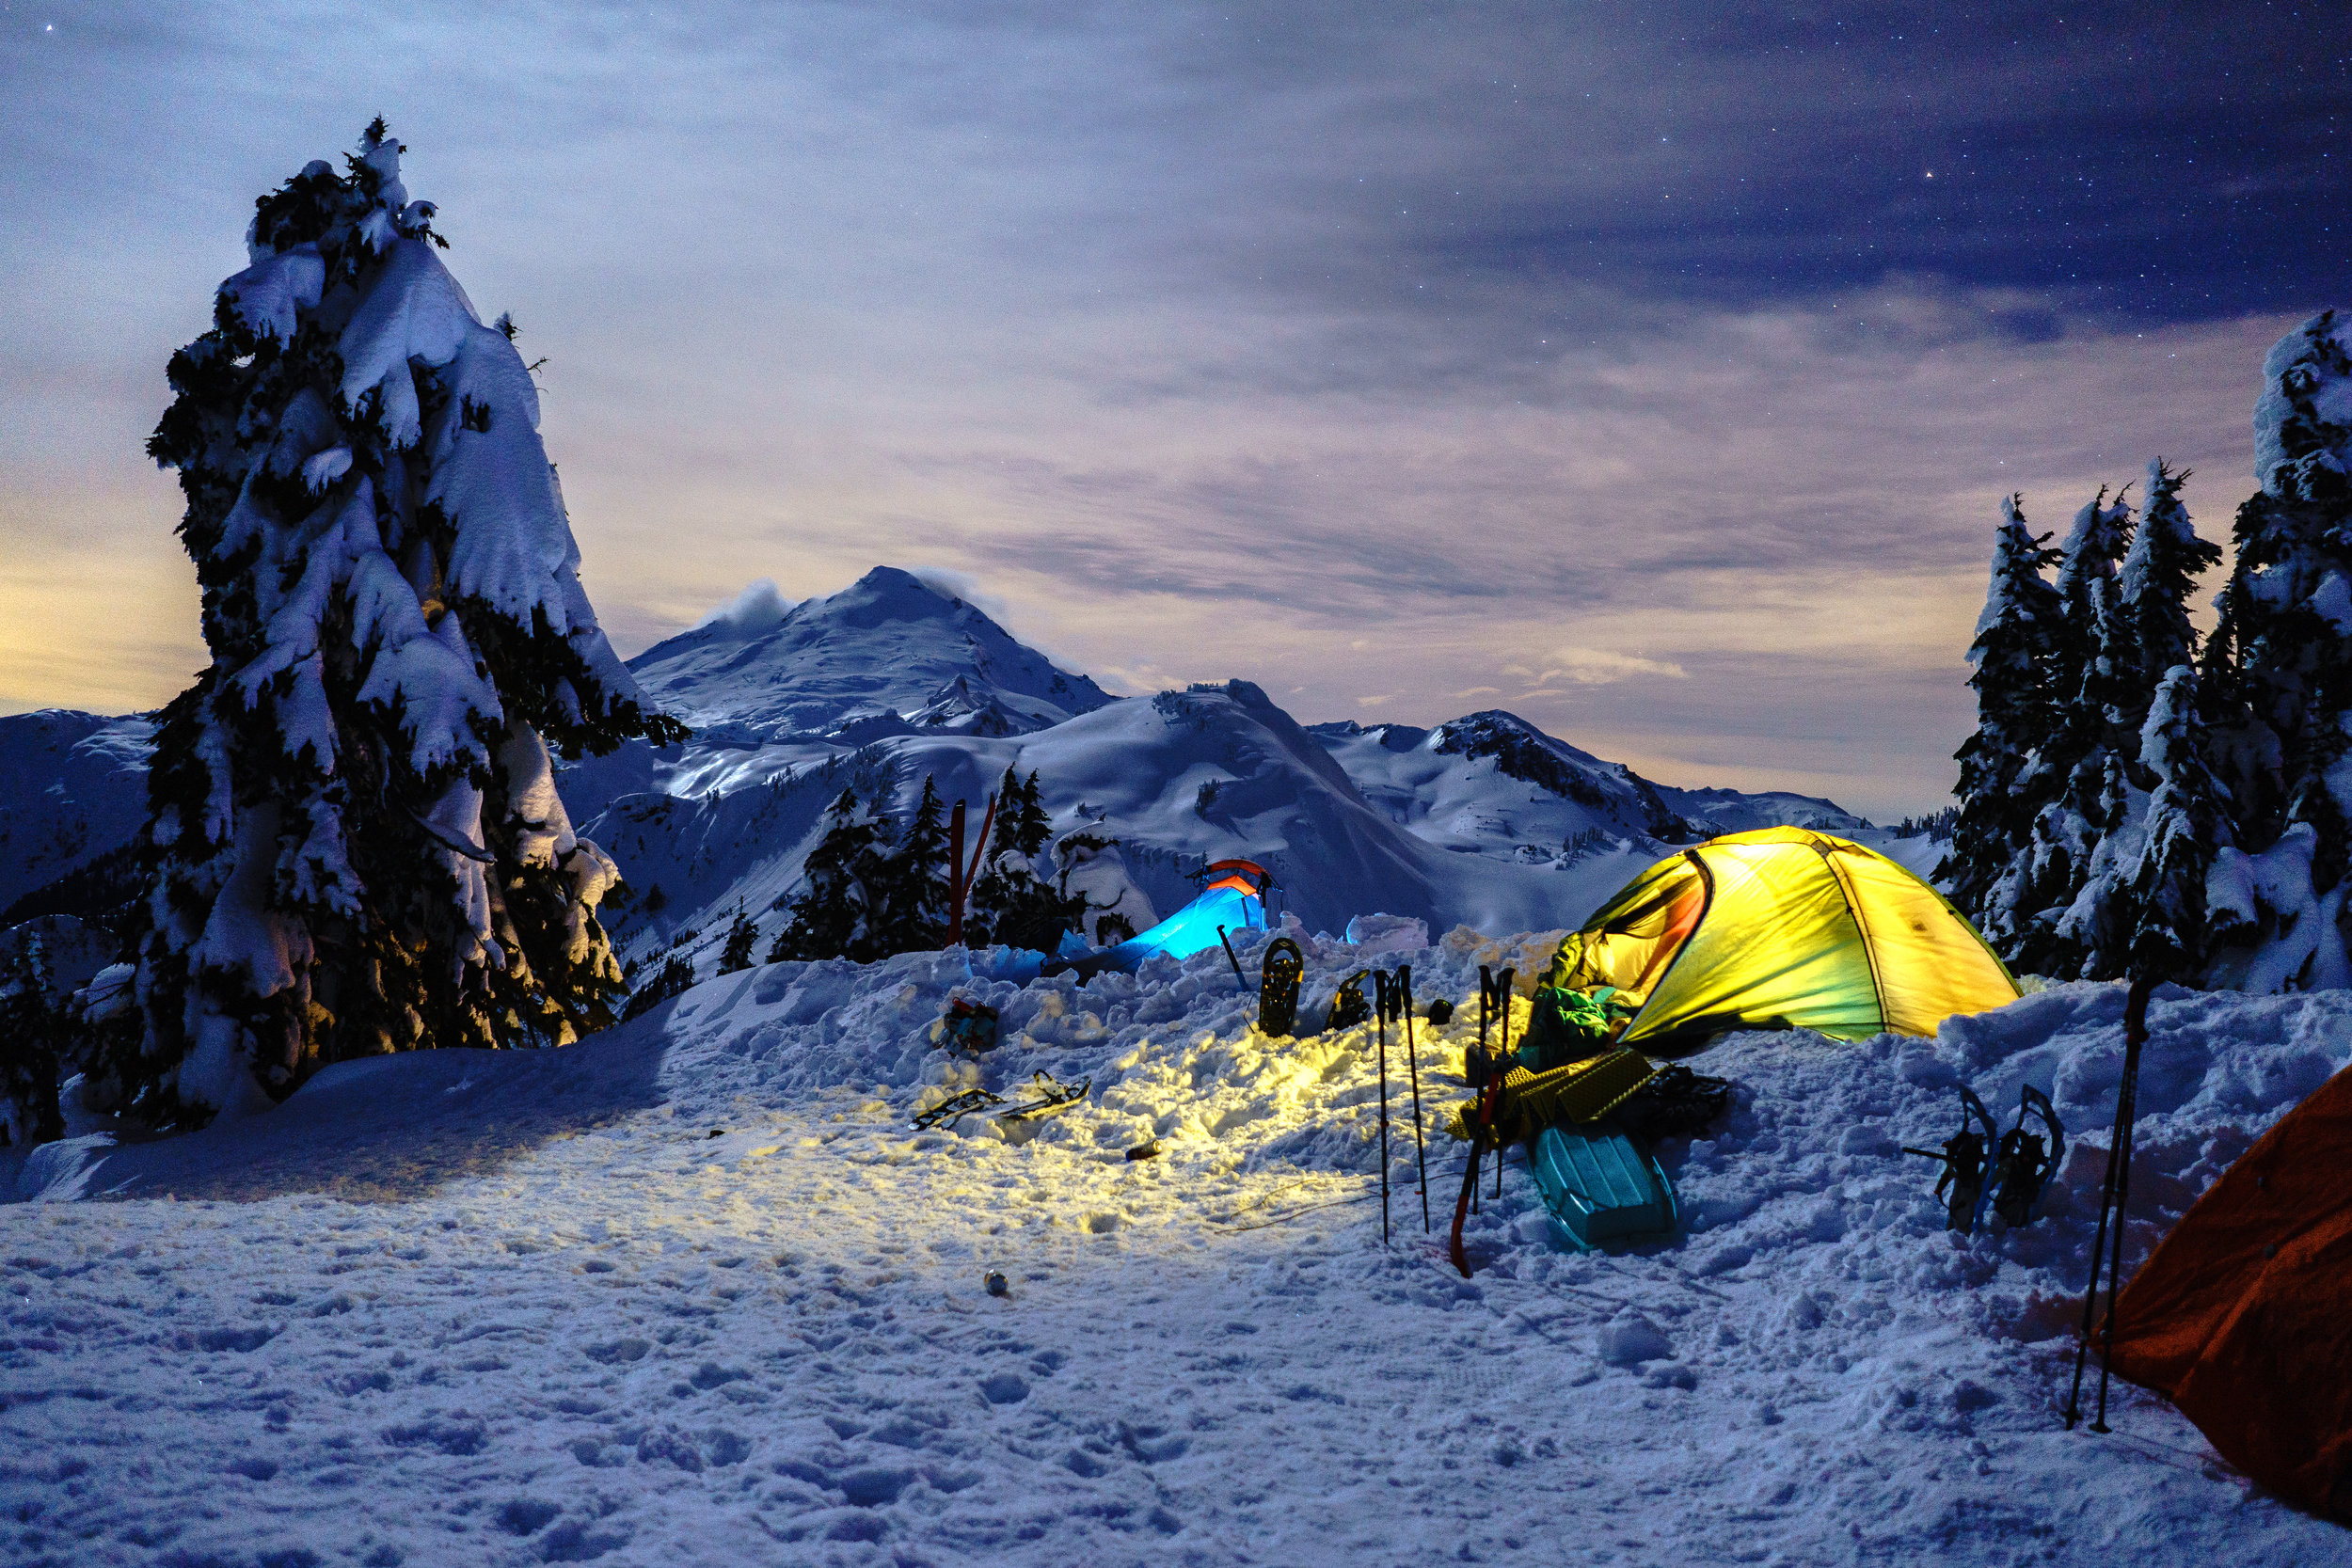 Mt. Baker and tent city